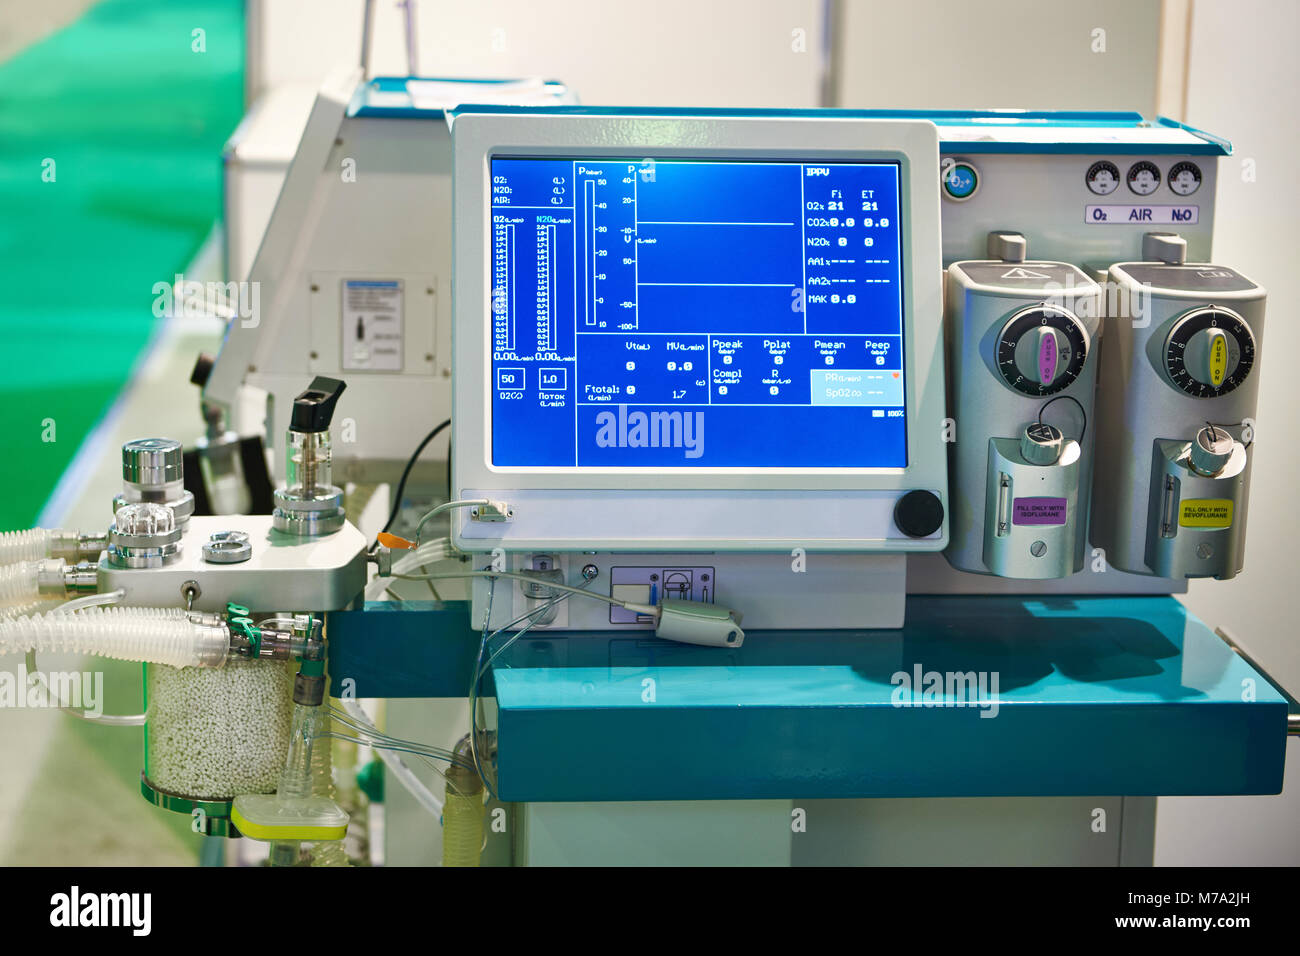 Inhalation anaesthetic machine with monitor Stock Photo